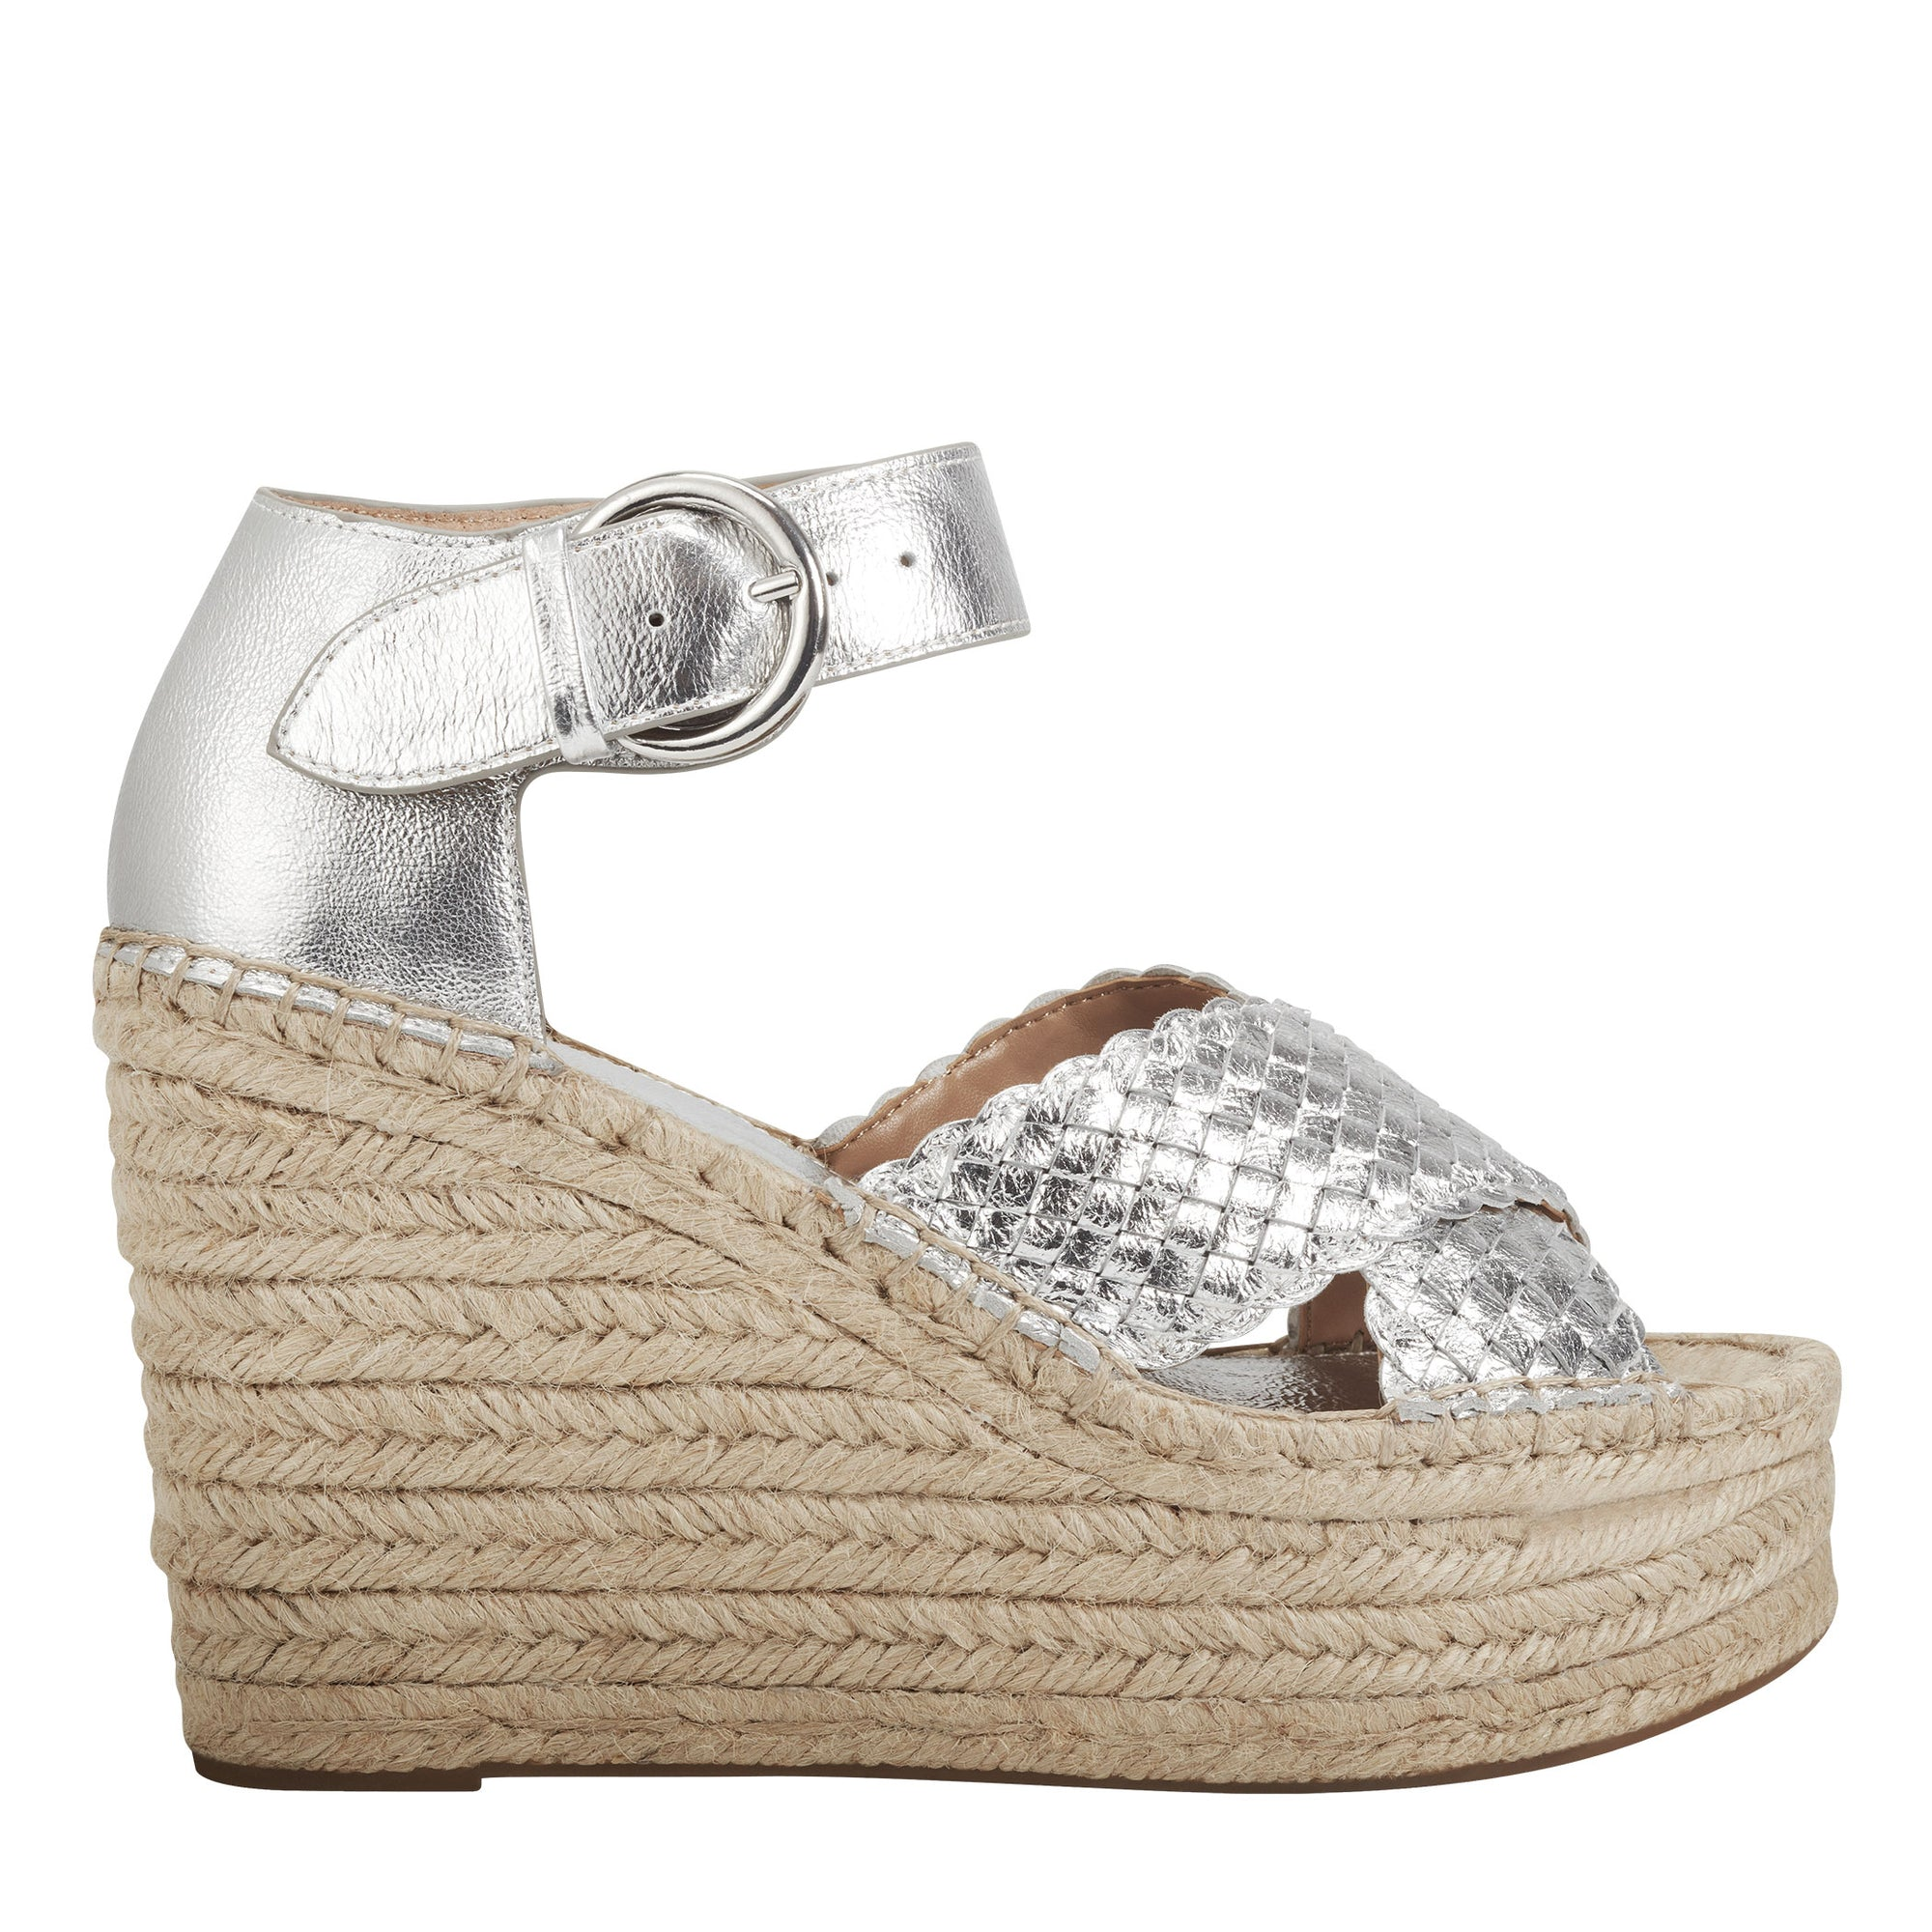 aylon-espadrille-wedge-sandal-in-silver-leather